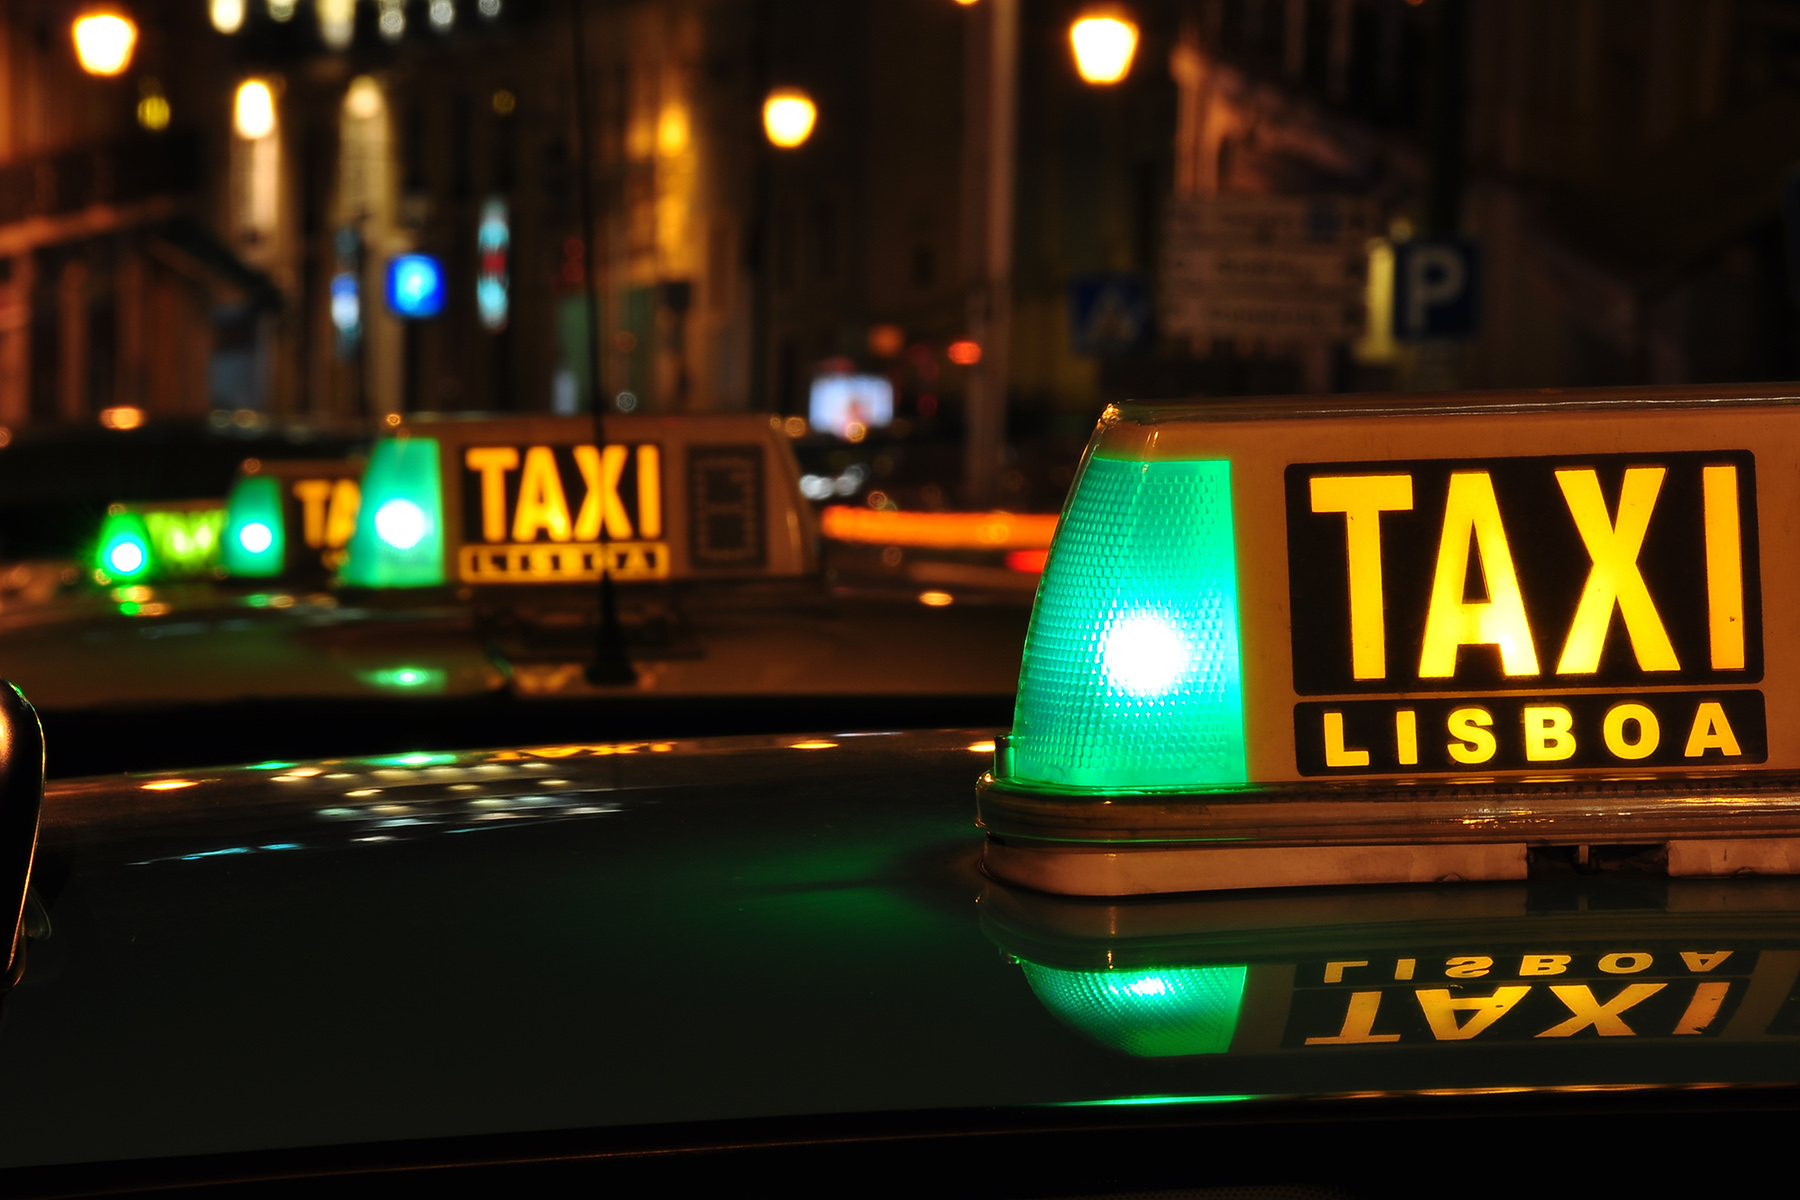 A Lisbon taxi stand at night